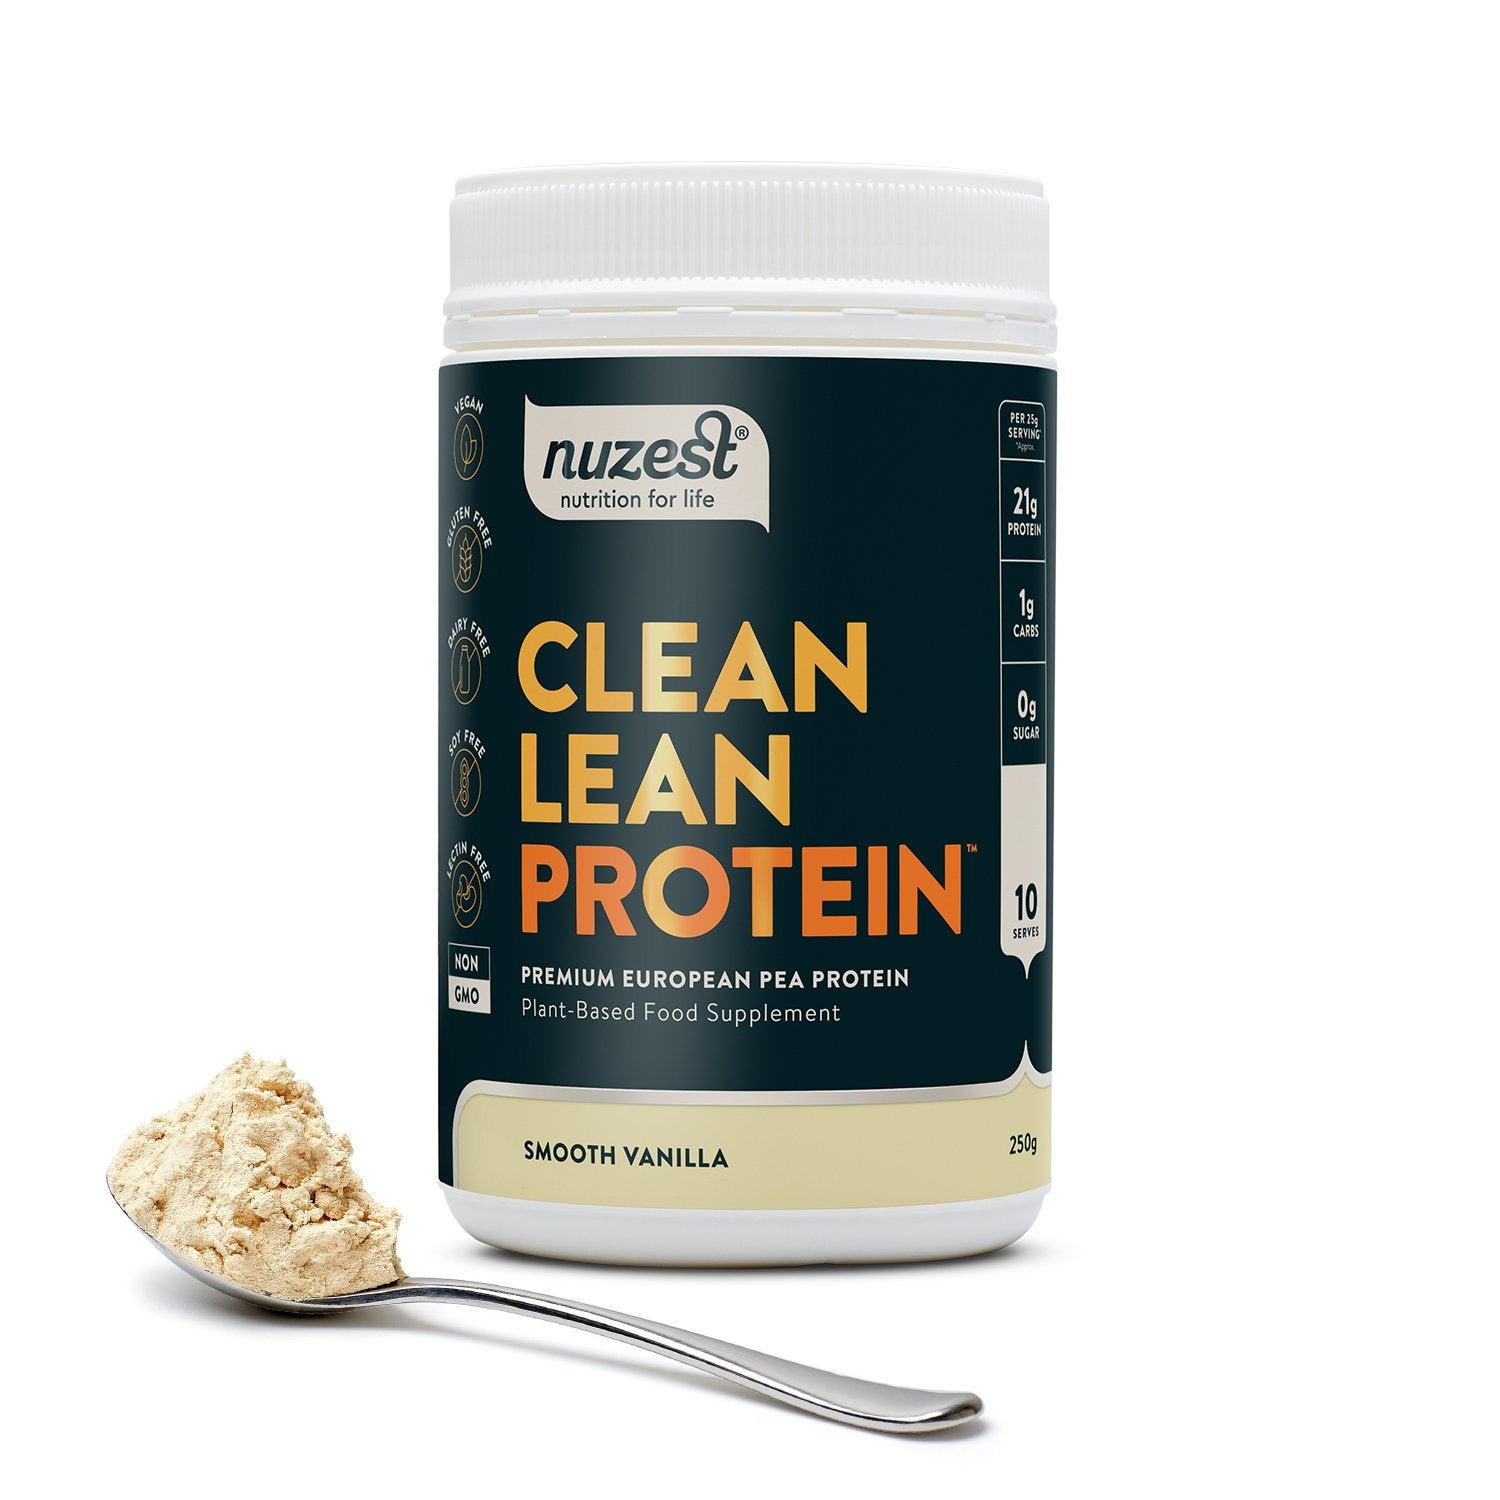 Clean Lean Protein Smooth Vanilla, Organic Pea Protein 250g